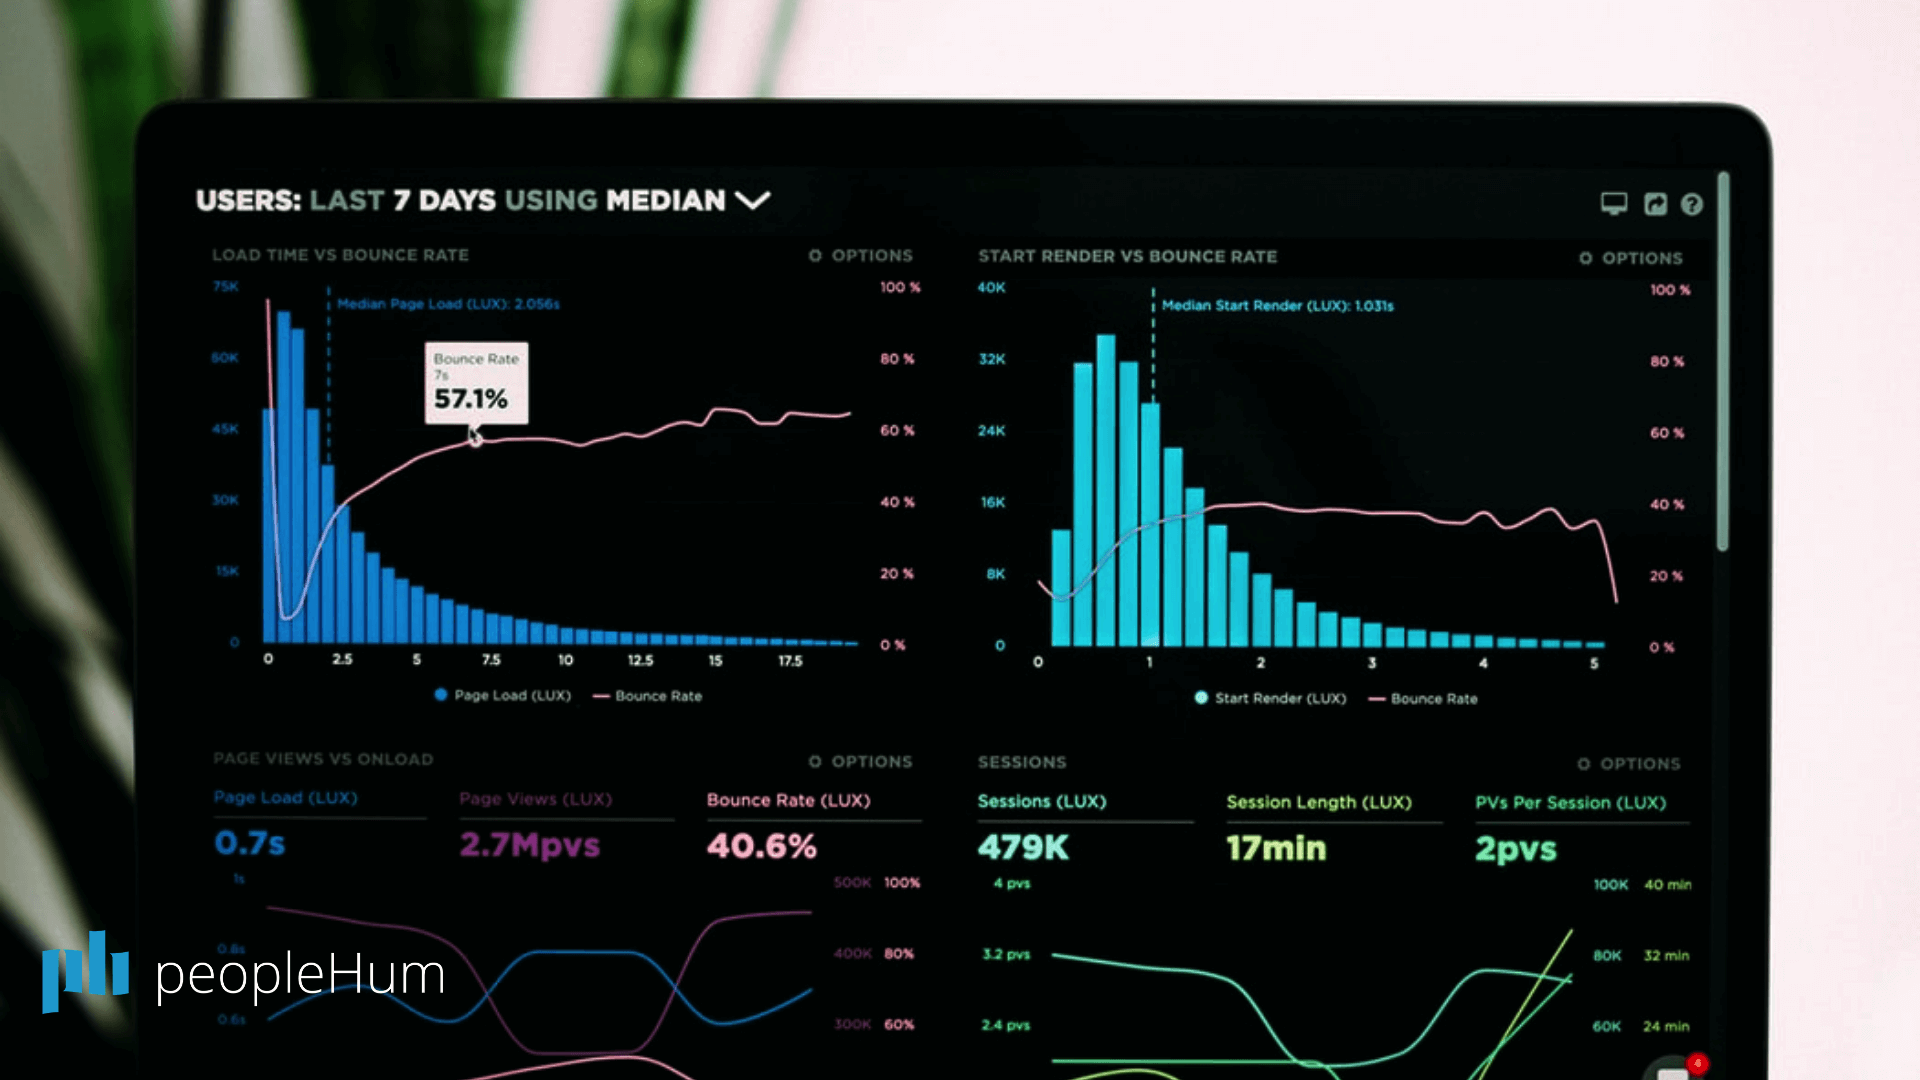 How Google is using people analytics to completely reinvent HR   peopleHum